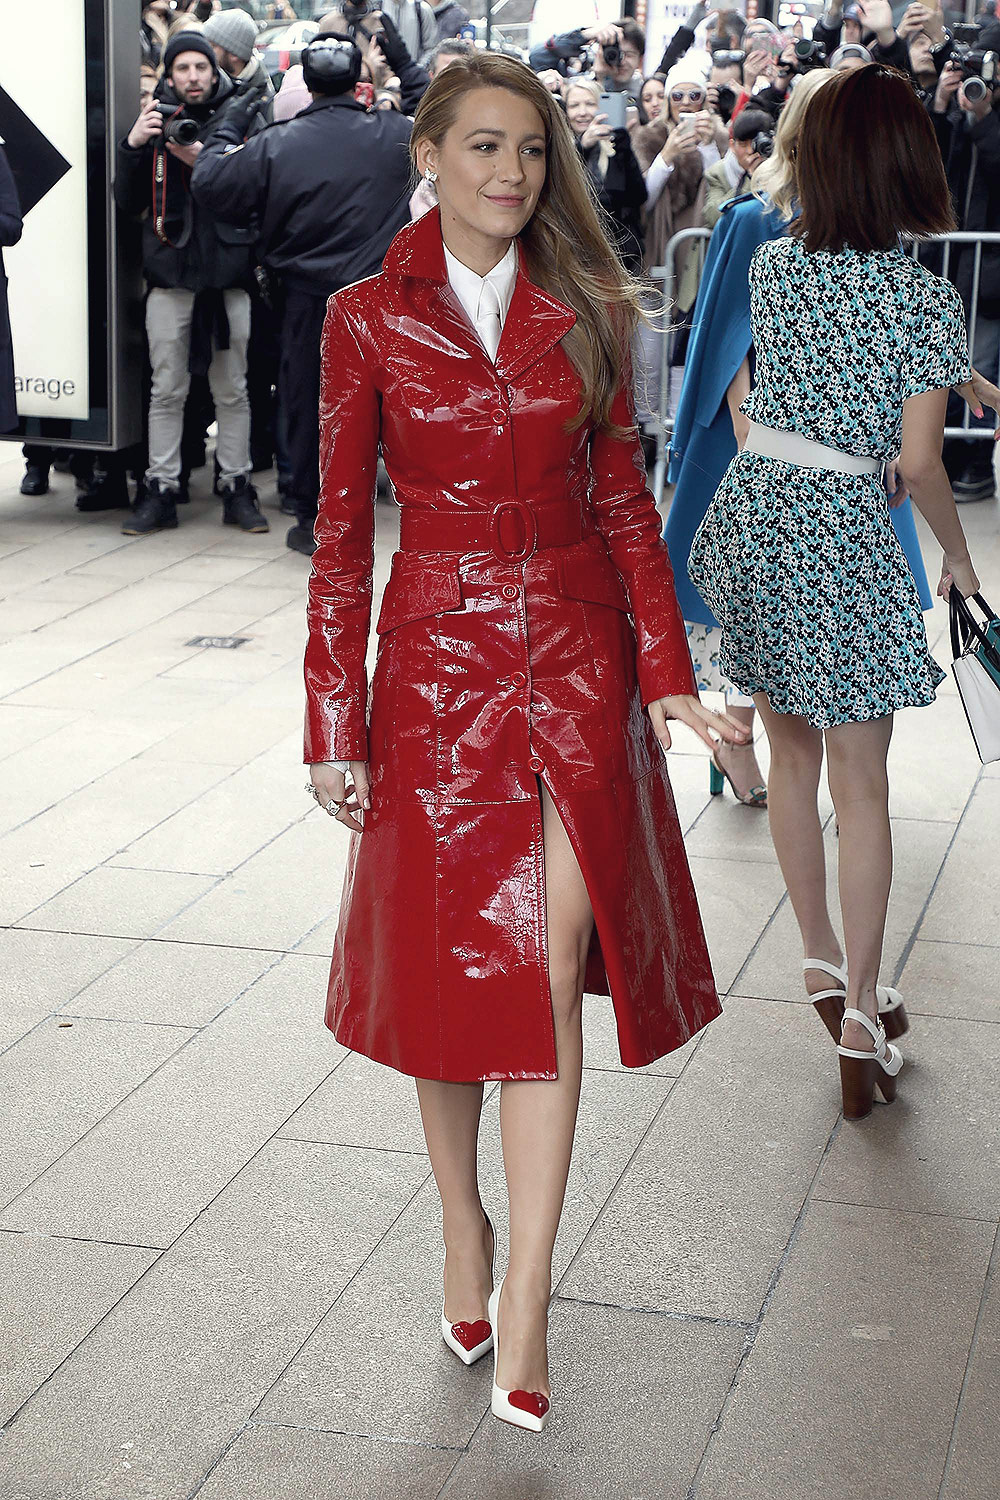 Blake Lively arrives at the Michael Kors show